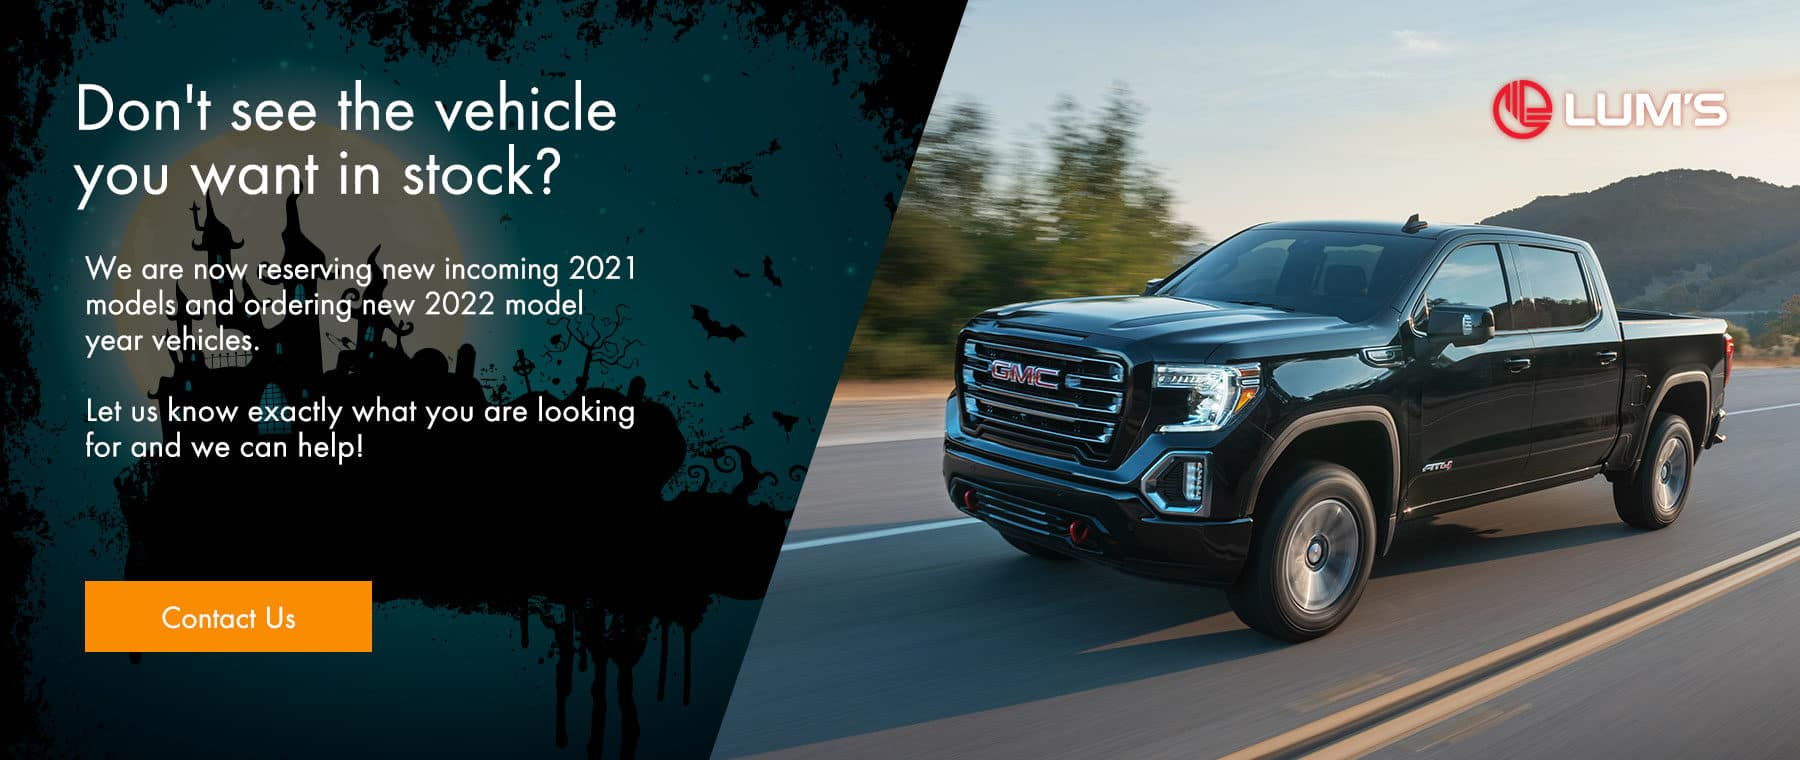 Don't see the vehicle you want in stock? We are now reserving new incoming 2021 models and ordering new 2022 model year vehicles. Let us know exactly what you are looking for and we can help!